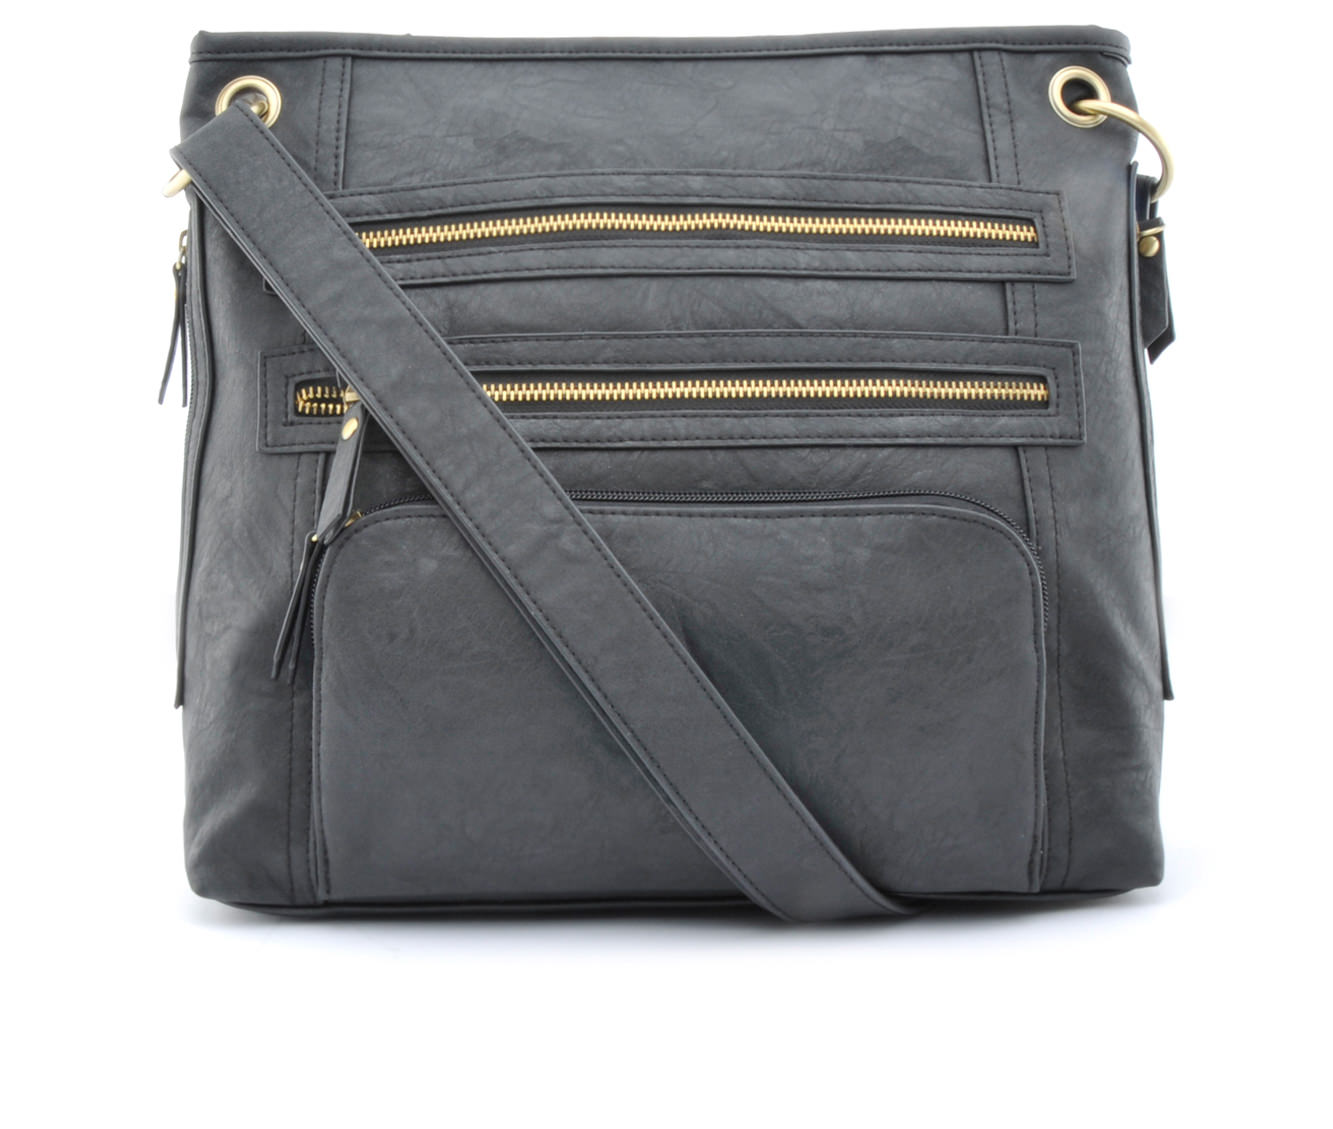 Image of Bueno Of California Large Crossbody Handbag